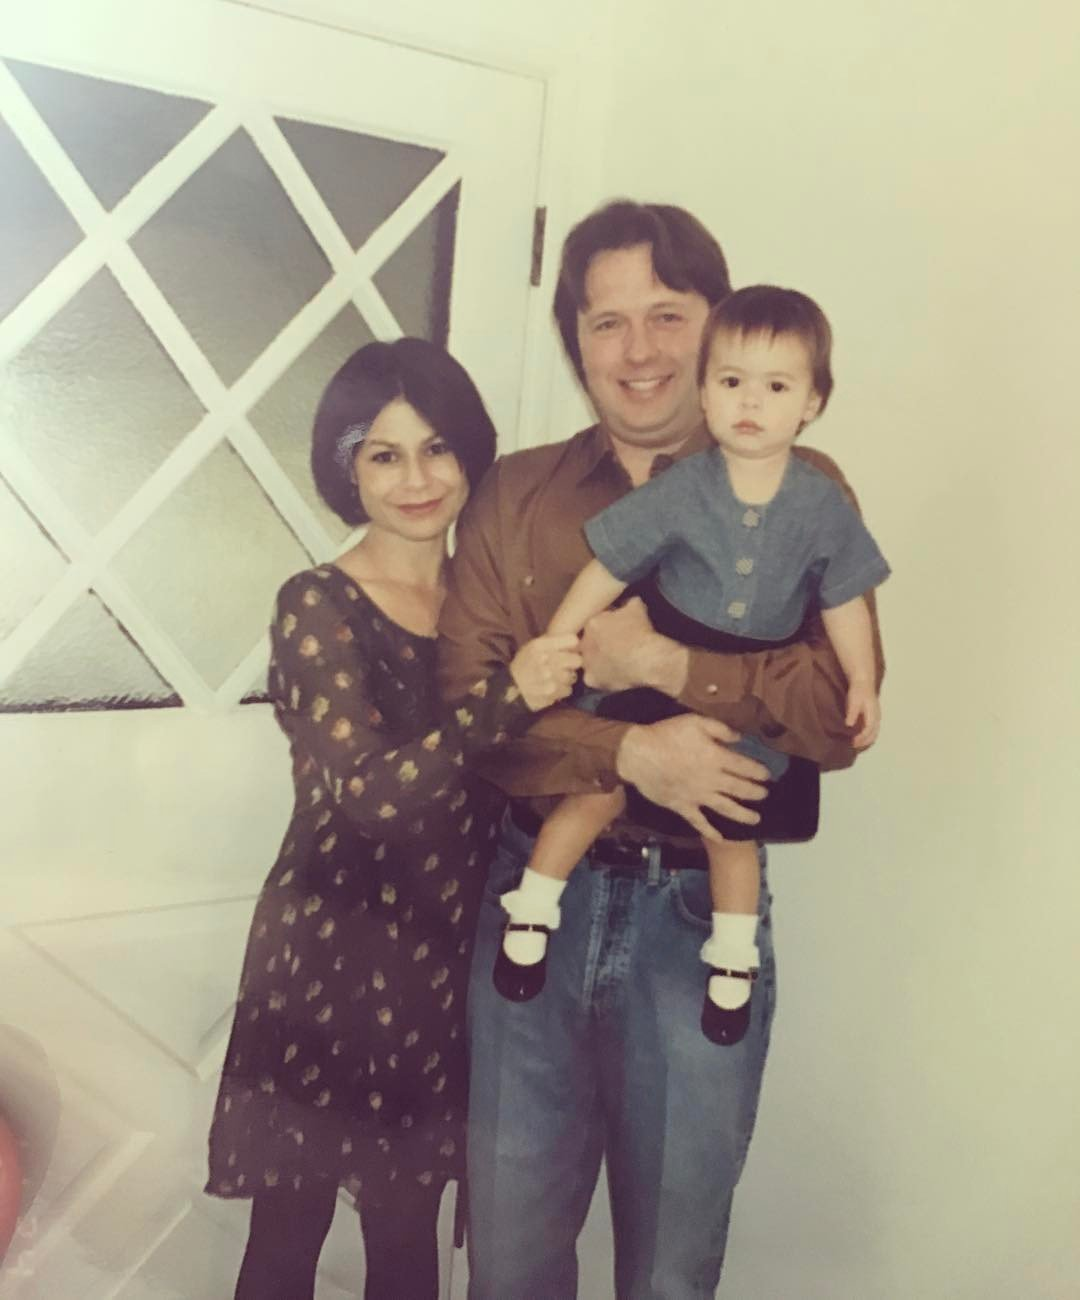 Miranda Cosgrove when little with her mother and father